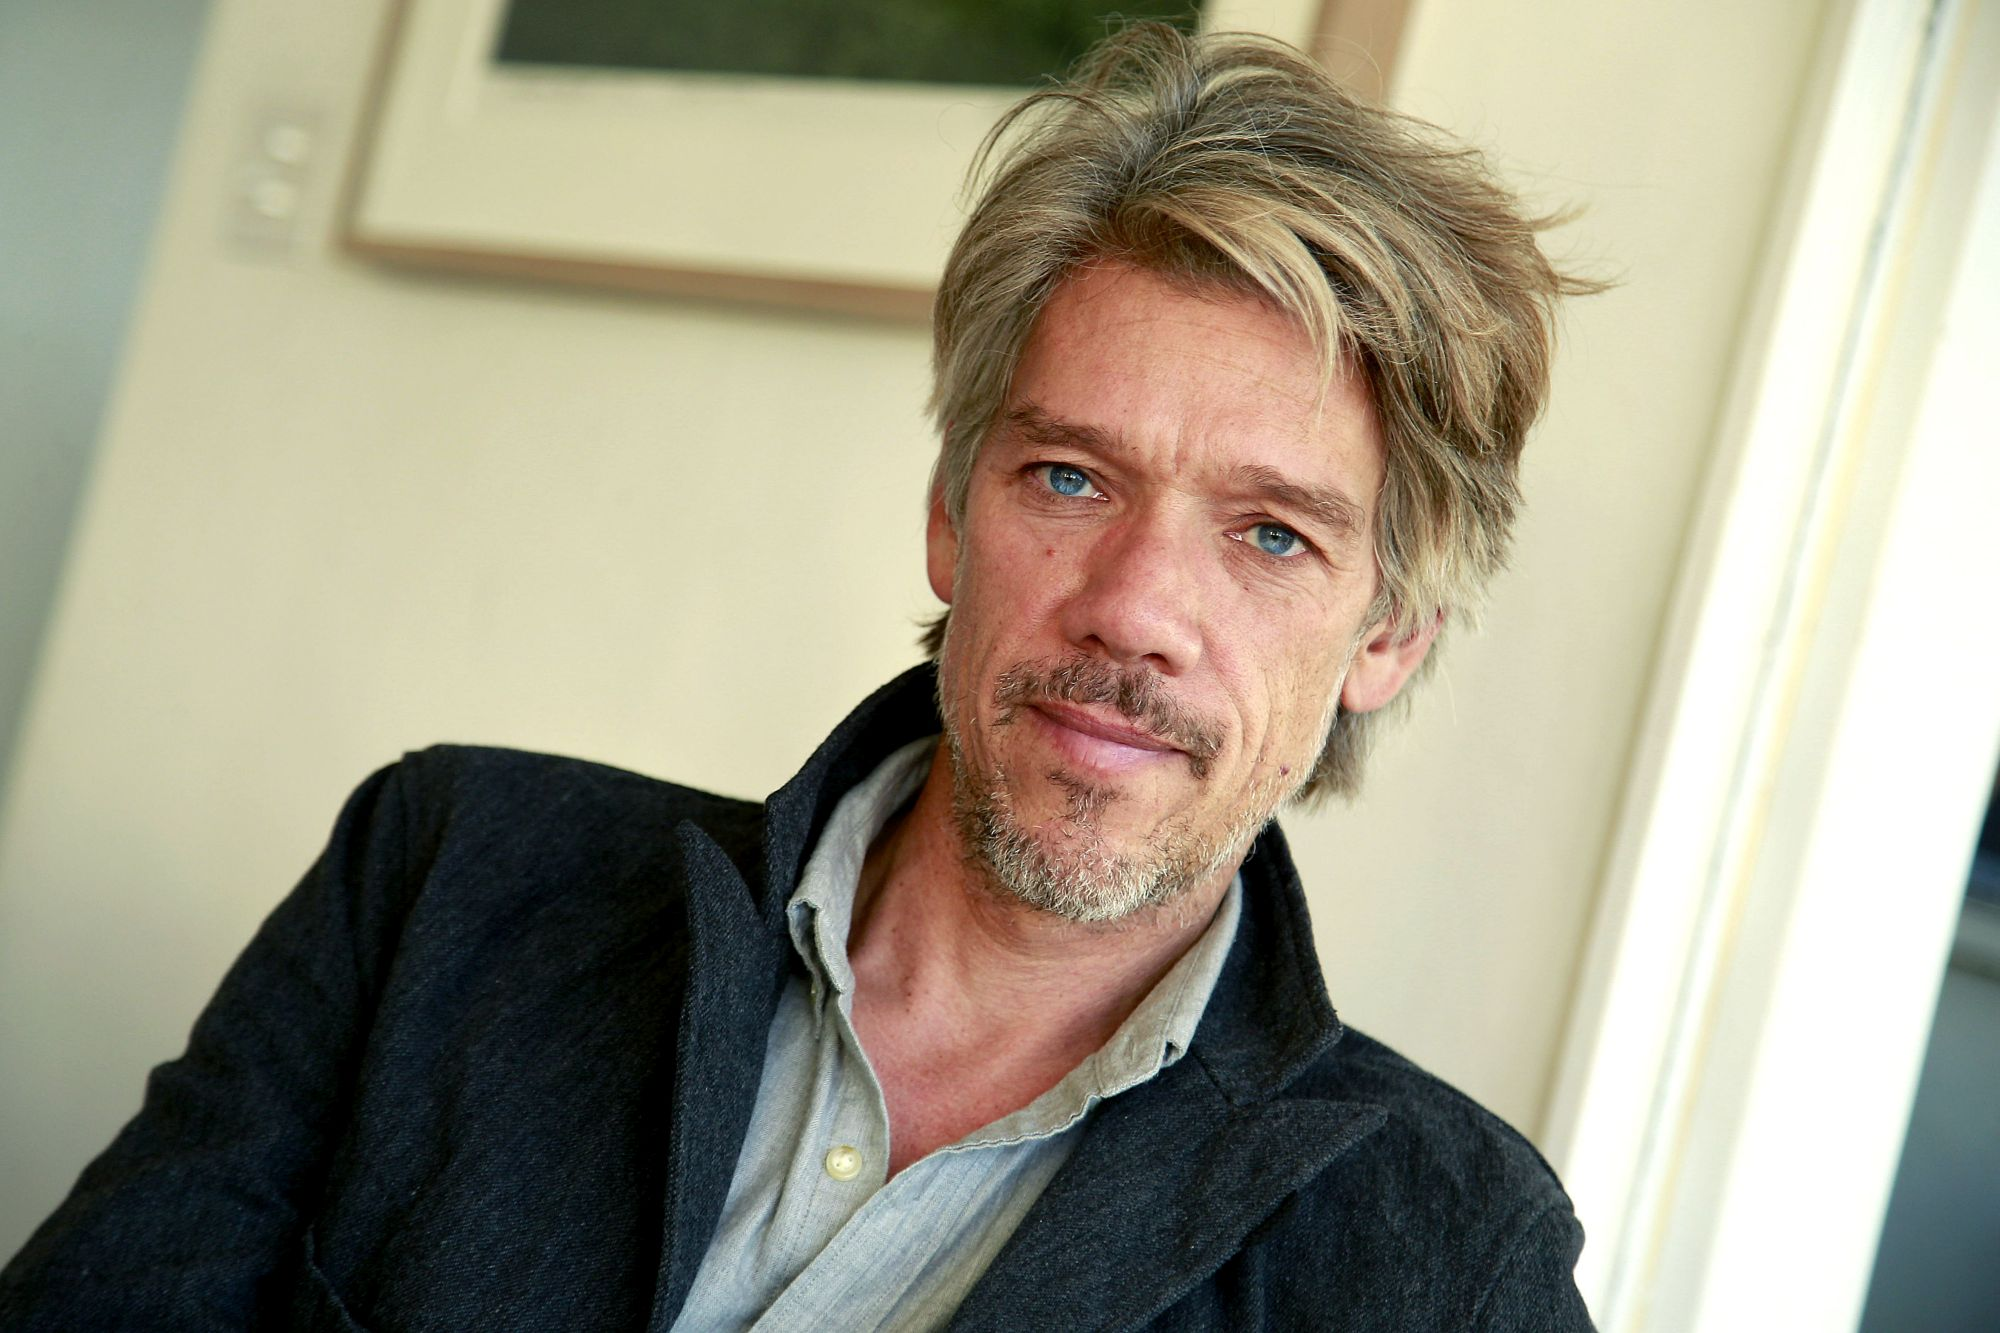 PACIFIC PALISADES, CA., NOVEMBER 22, 2016---Stephen Gaghan, screenwriter and director. He is noted for writing the screenplay for Steven Soderbergh's film Traffic, based on a Channel 4 series, for which he won the Academy Award, as well as Syriana which he wrote and directed.  (Kirk McKoy / LOS ANGELES TIMES)